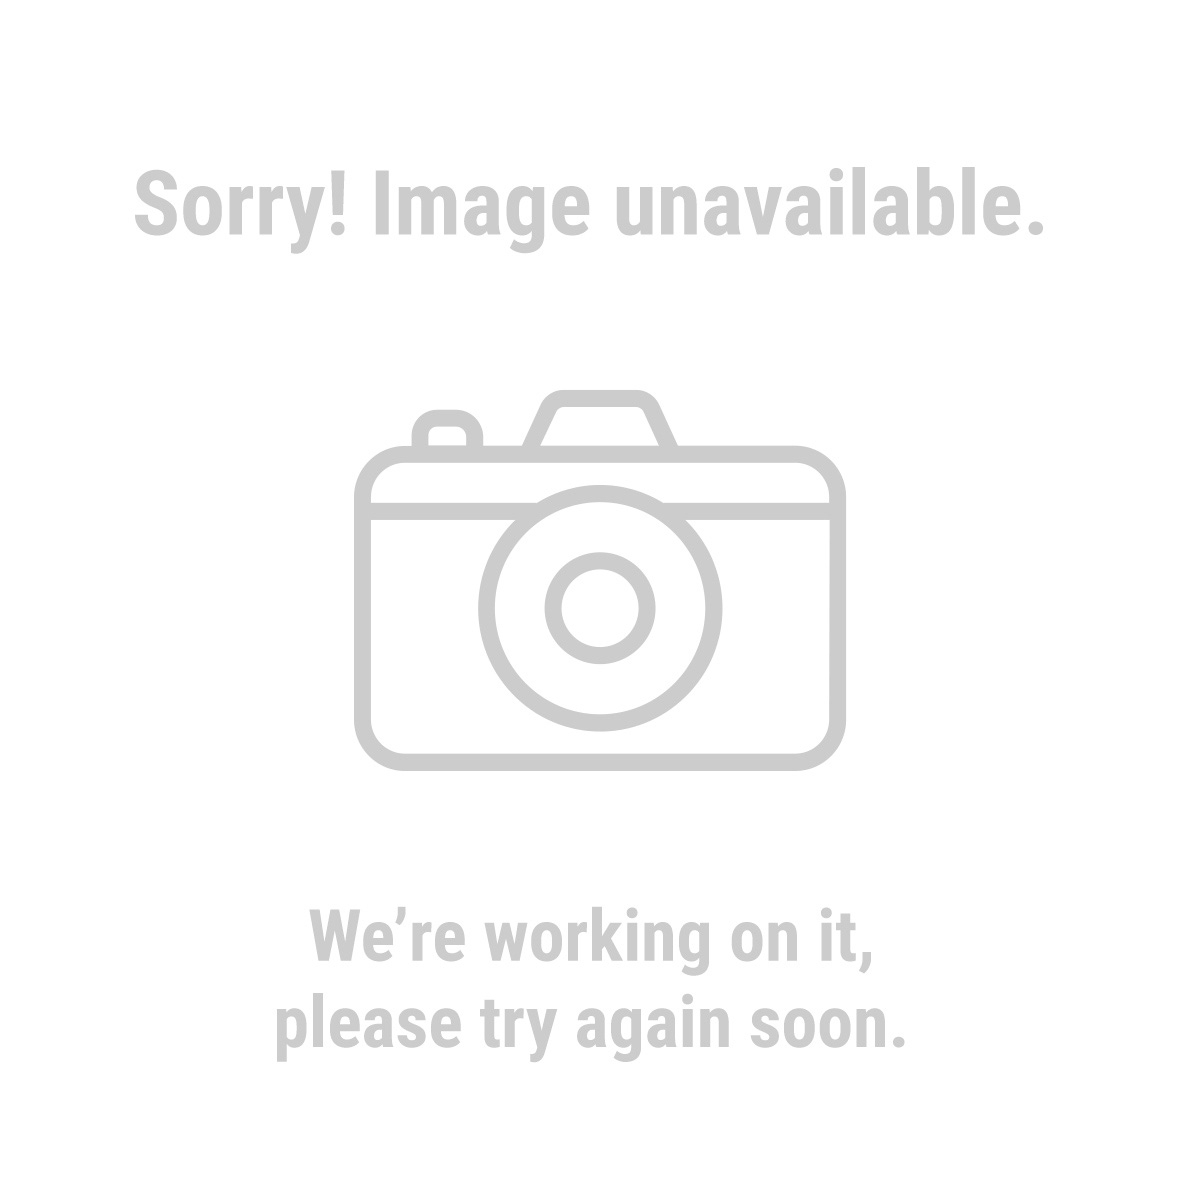 47309 12 Piece Adjustable Stretch Cord Set